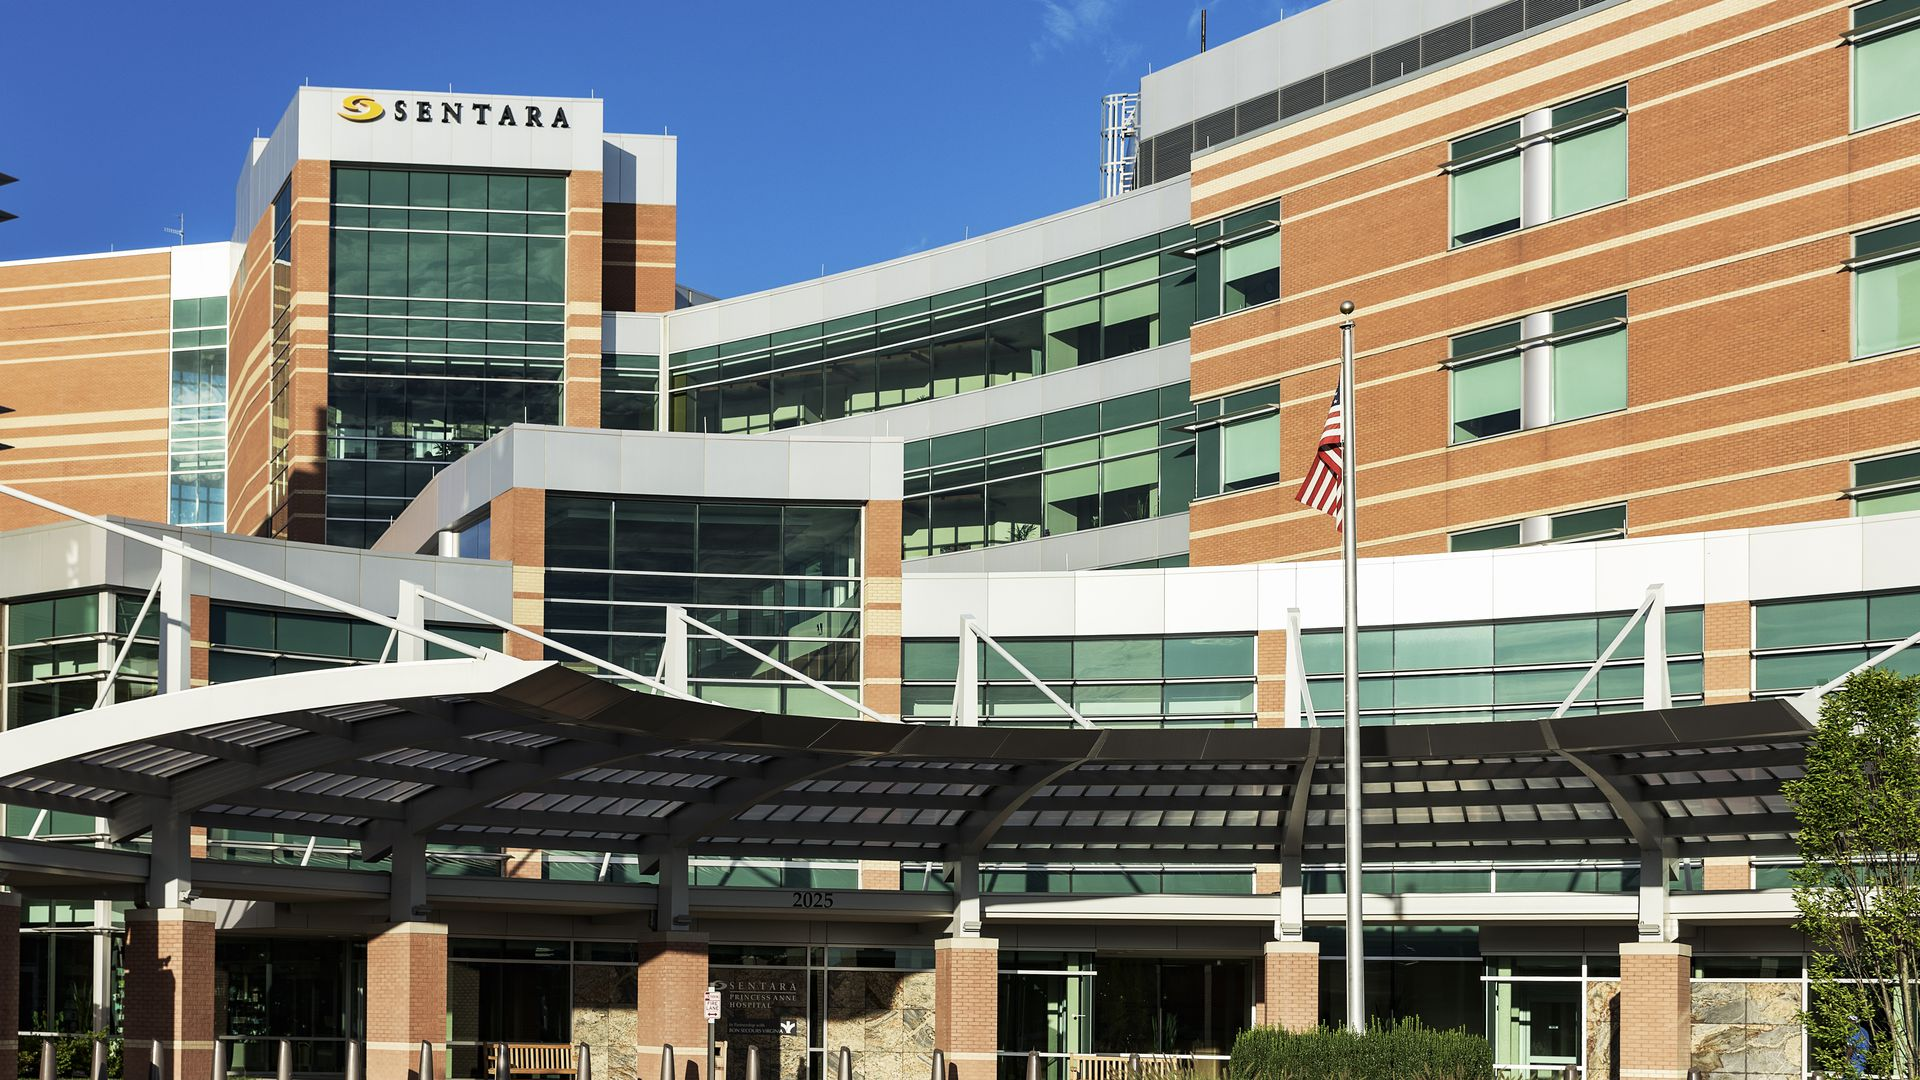 A Sentara Healthcare hospital in Virginia Beach, Virginia.